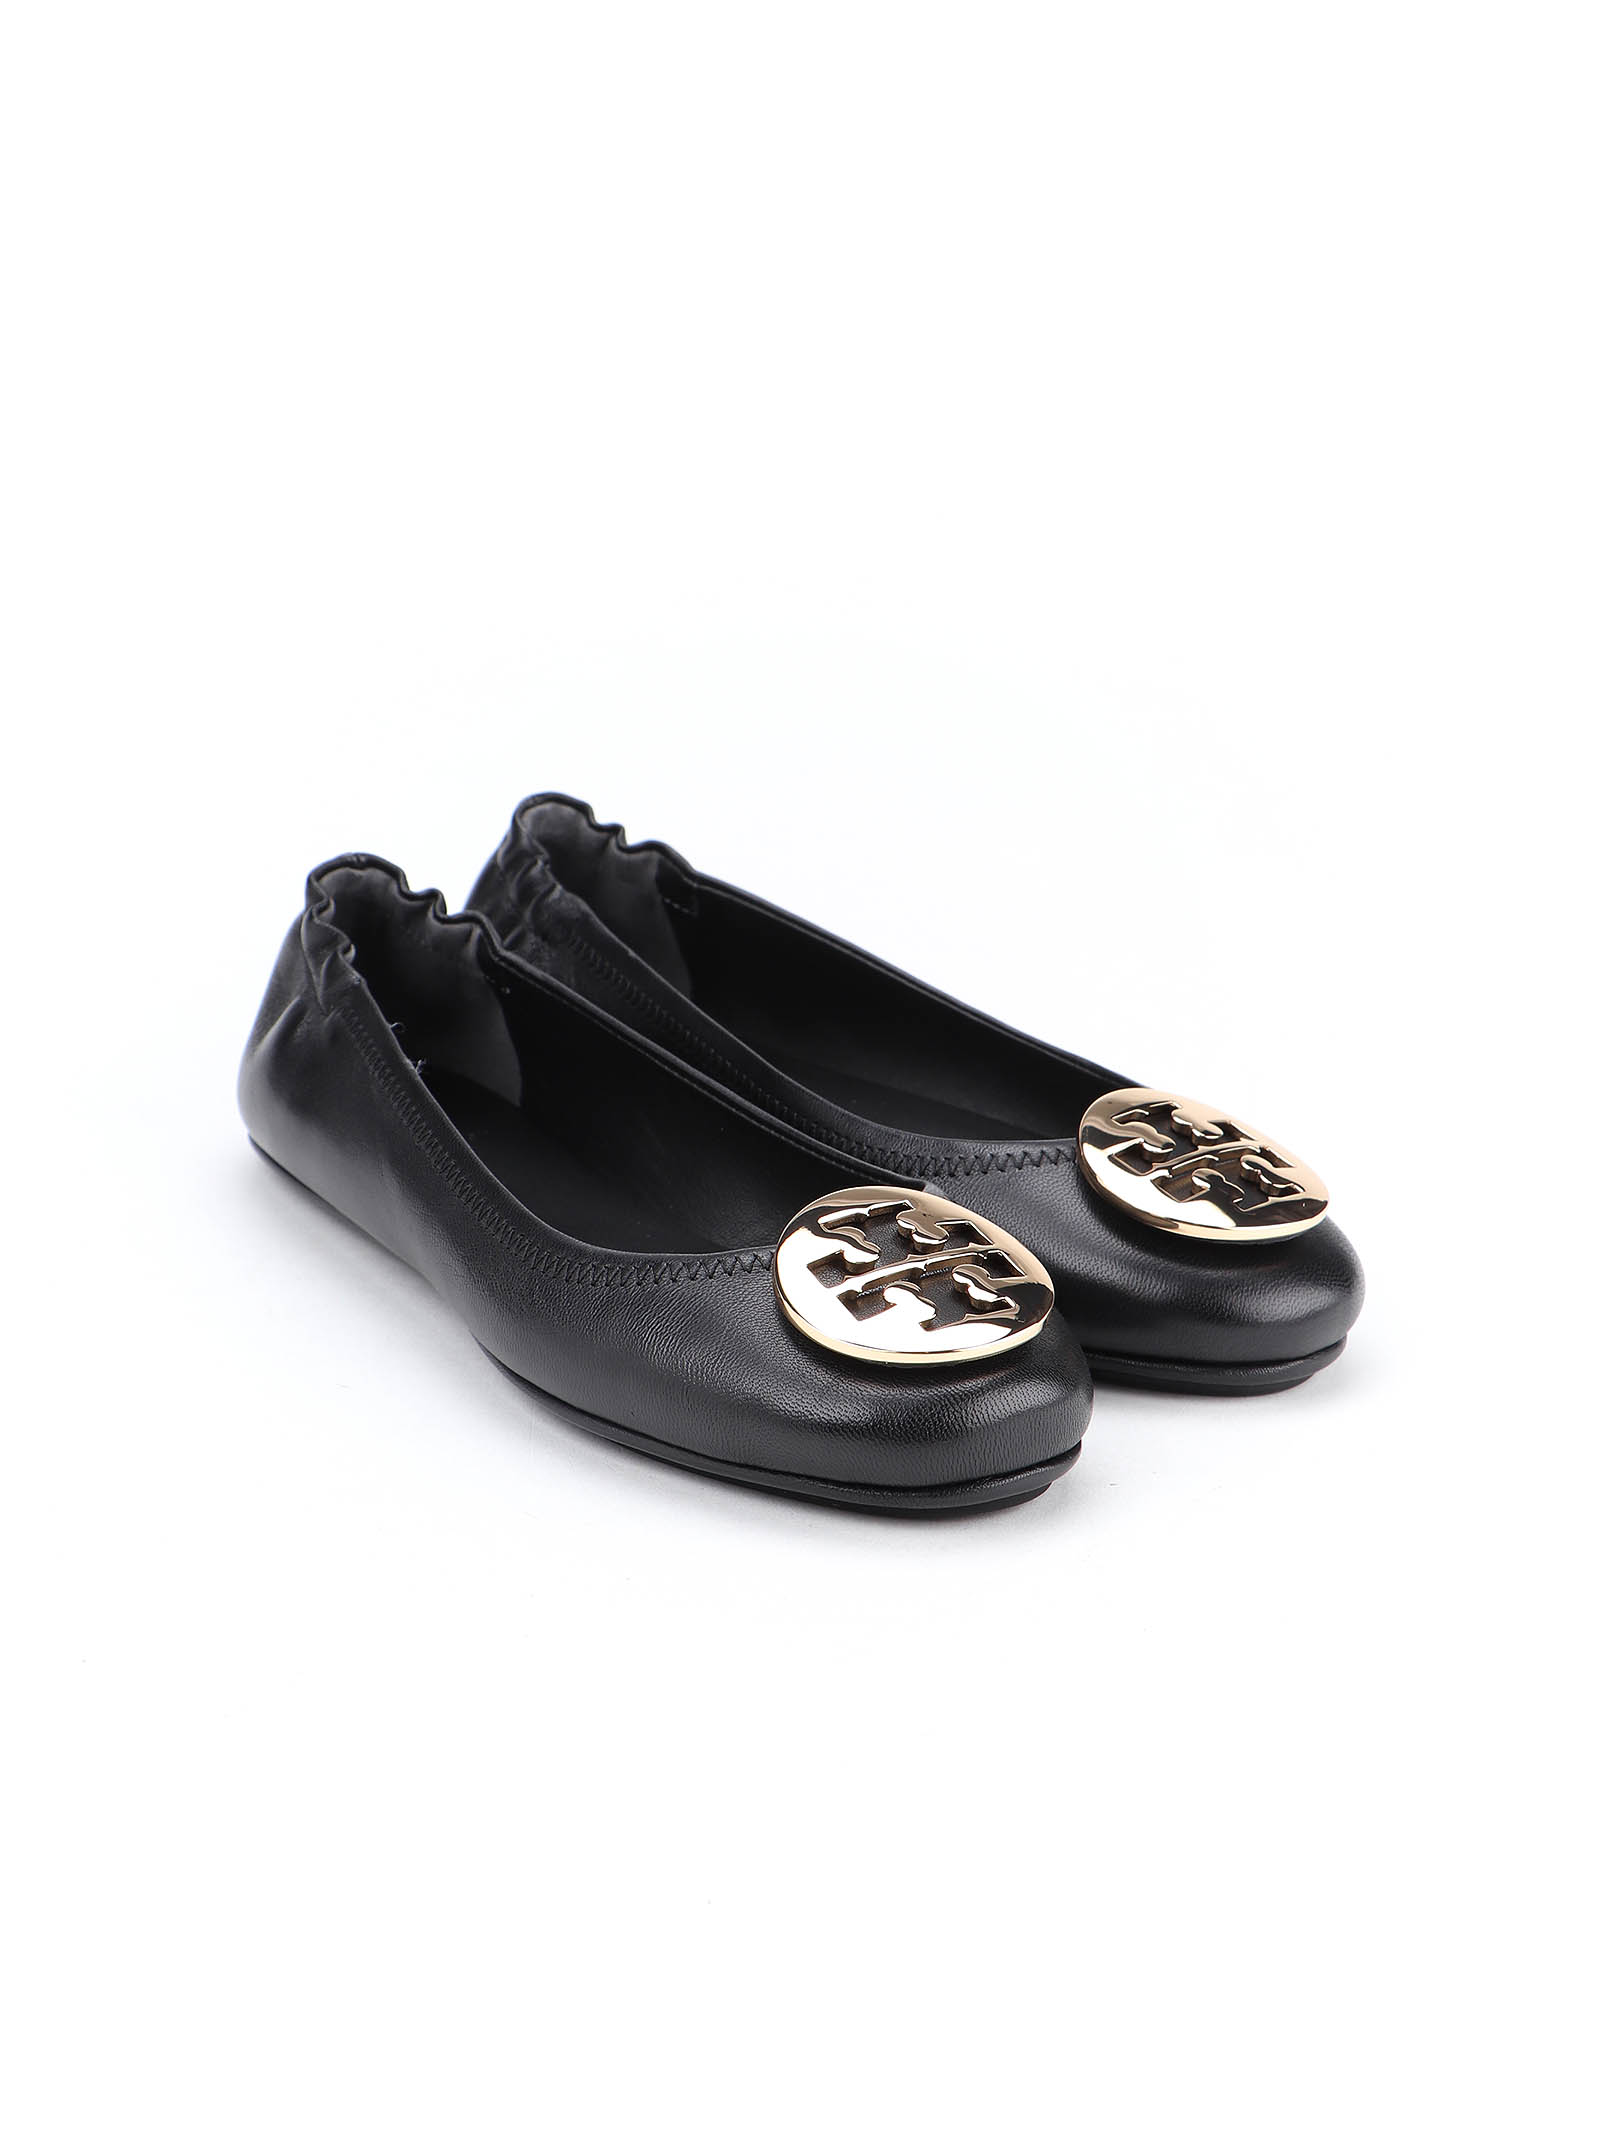 Picture of Tory Burch | Minnie Travel Ballet